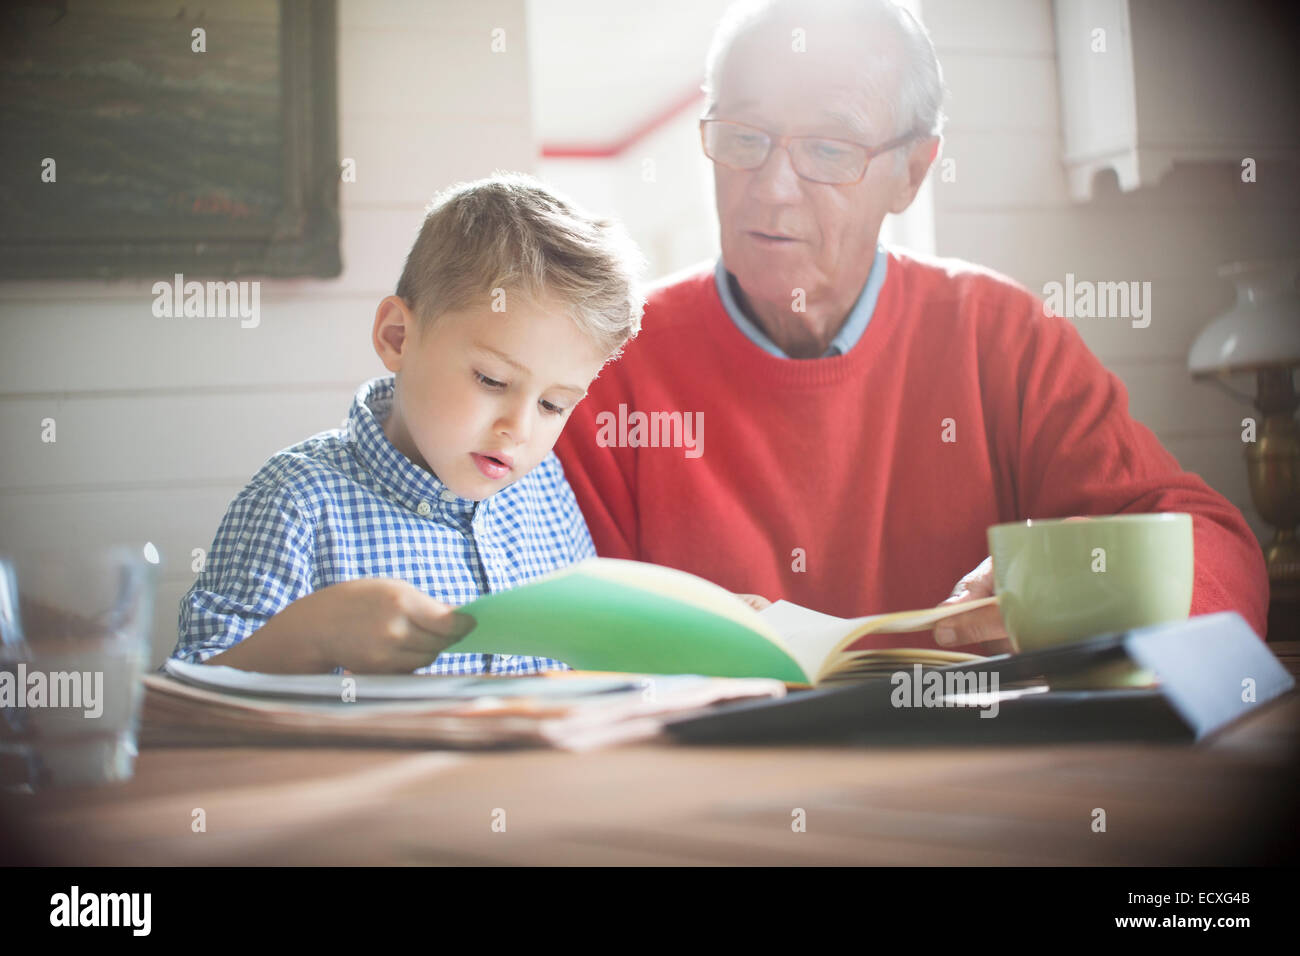 Boy reading with grandfather at table - Stock Image